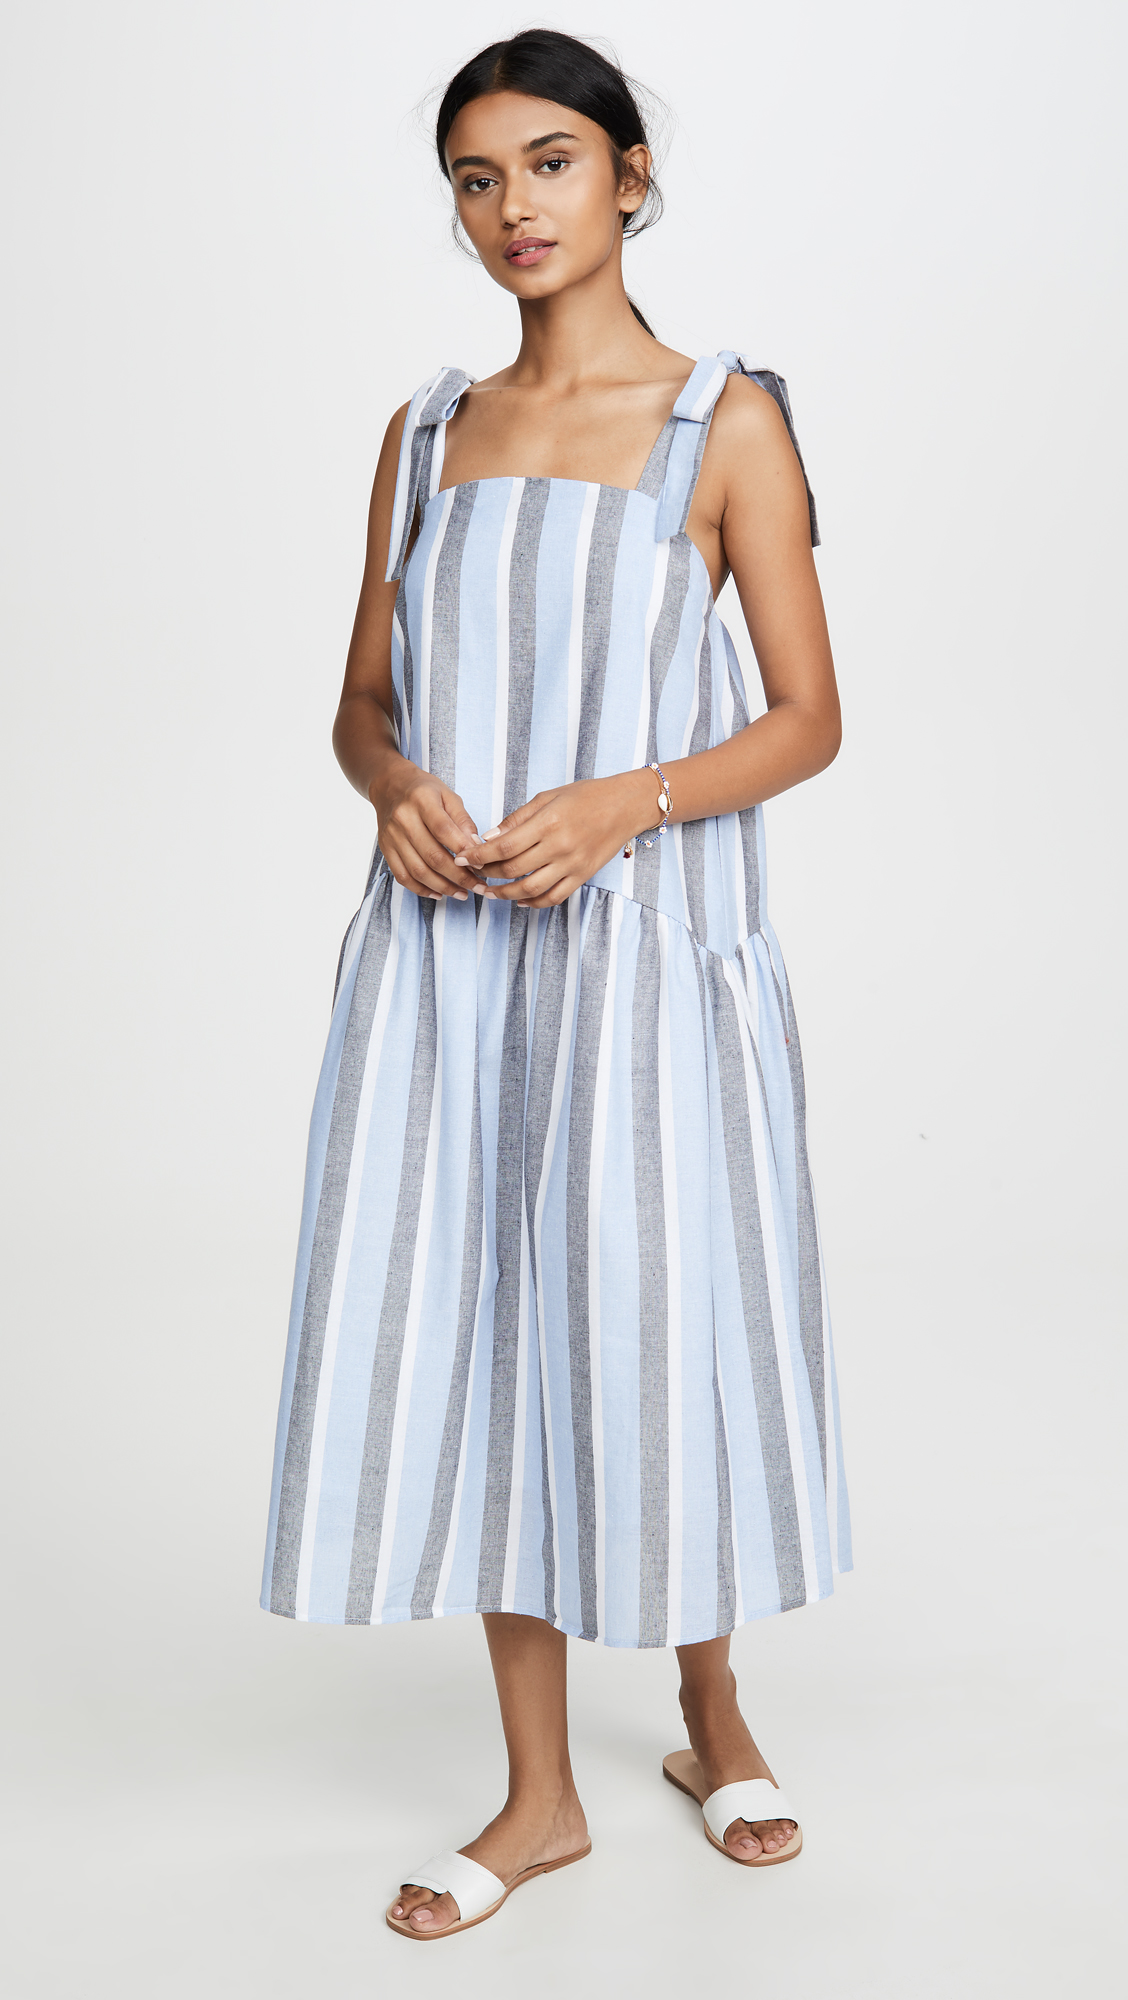 Stripe Pattern Midi Dress